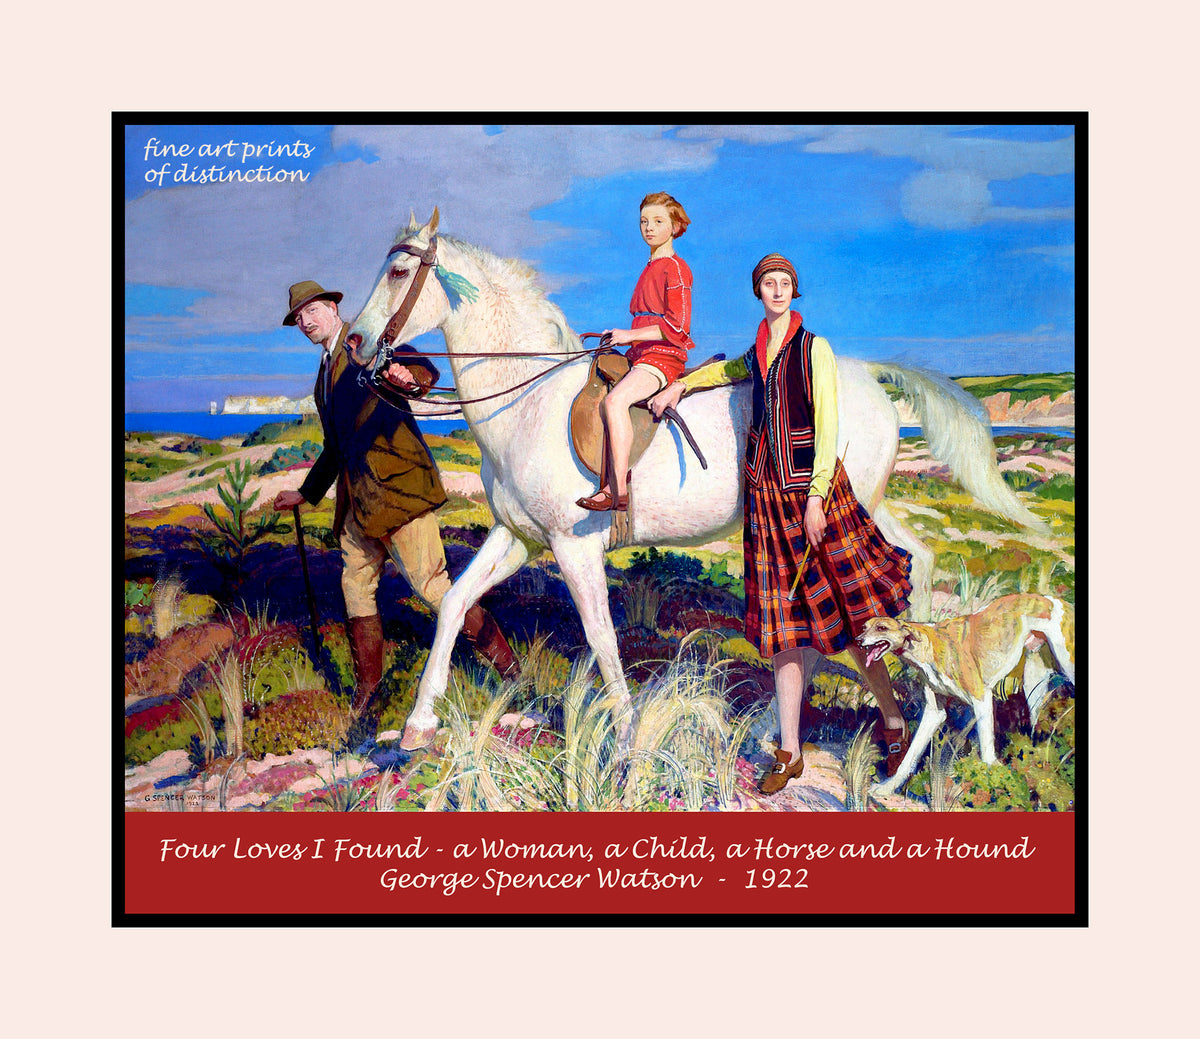 Four Loves I Found, a Woman, a Child, a Horse and a Hound by George Spencer Watson premium poster